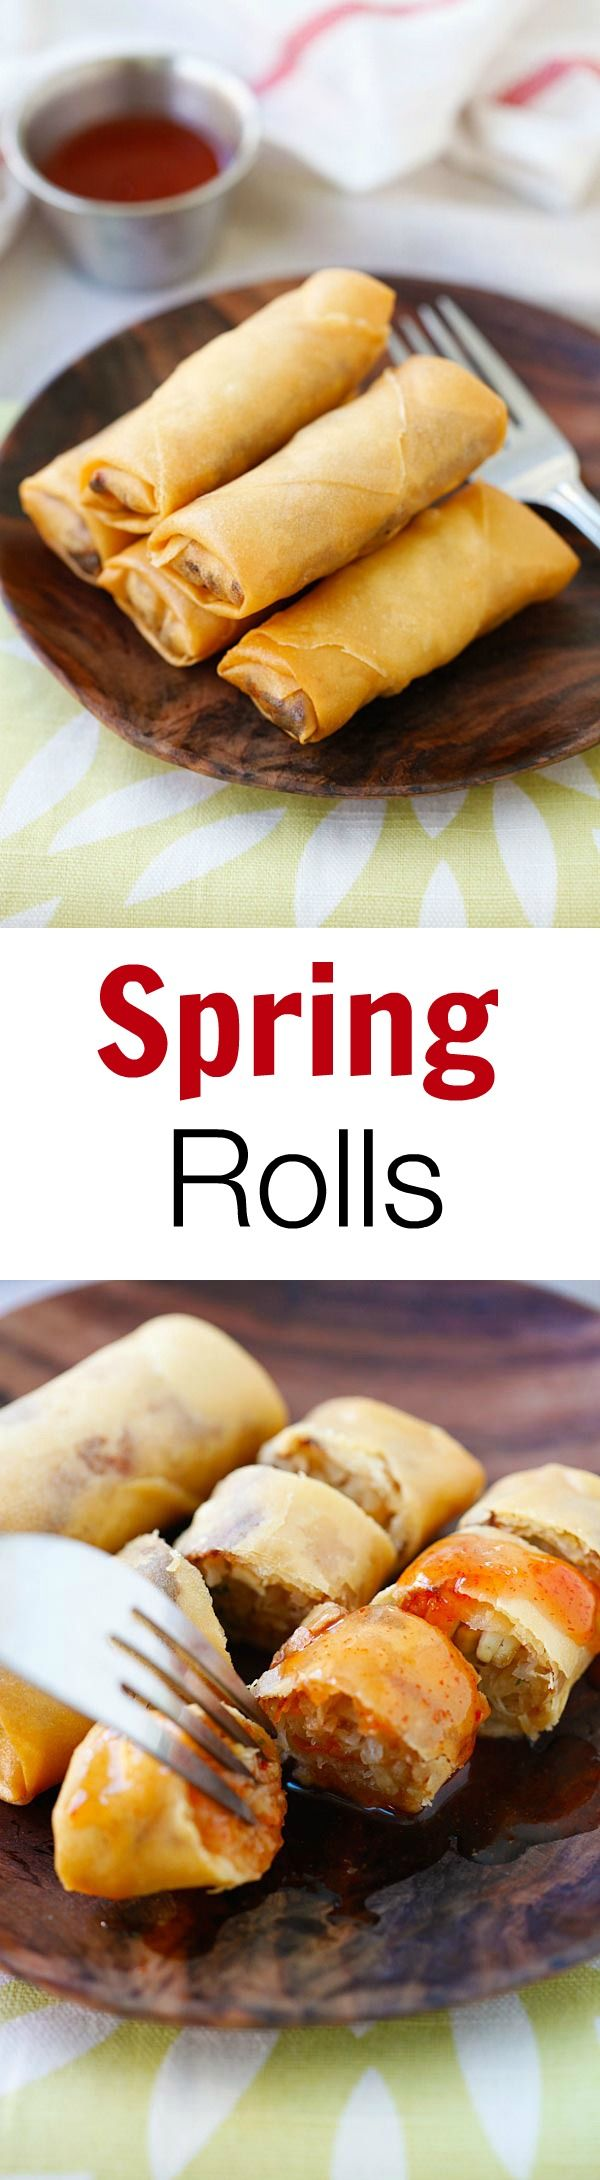 Fried spring rolls – the best and crispiest spring rolls recipe ever, filled with vegetables and deep-fried to golden perfection   rasamalaysia.com